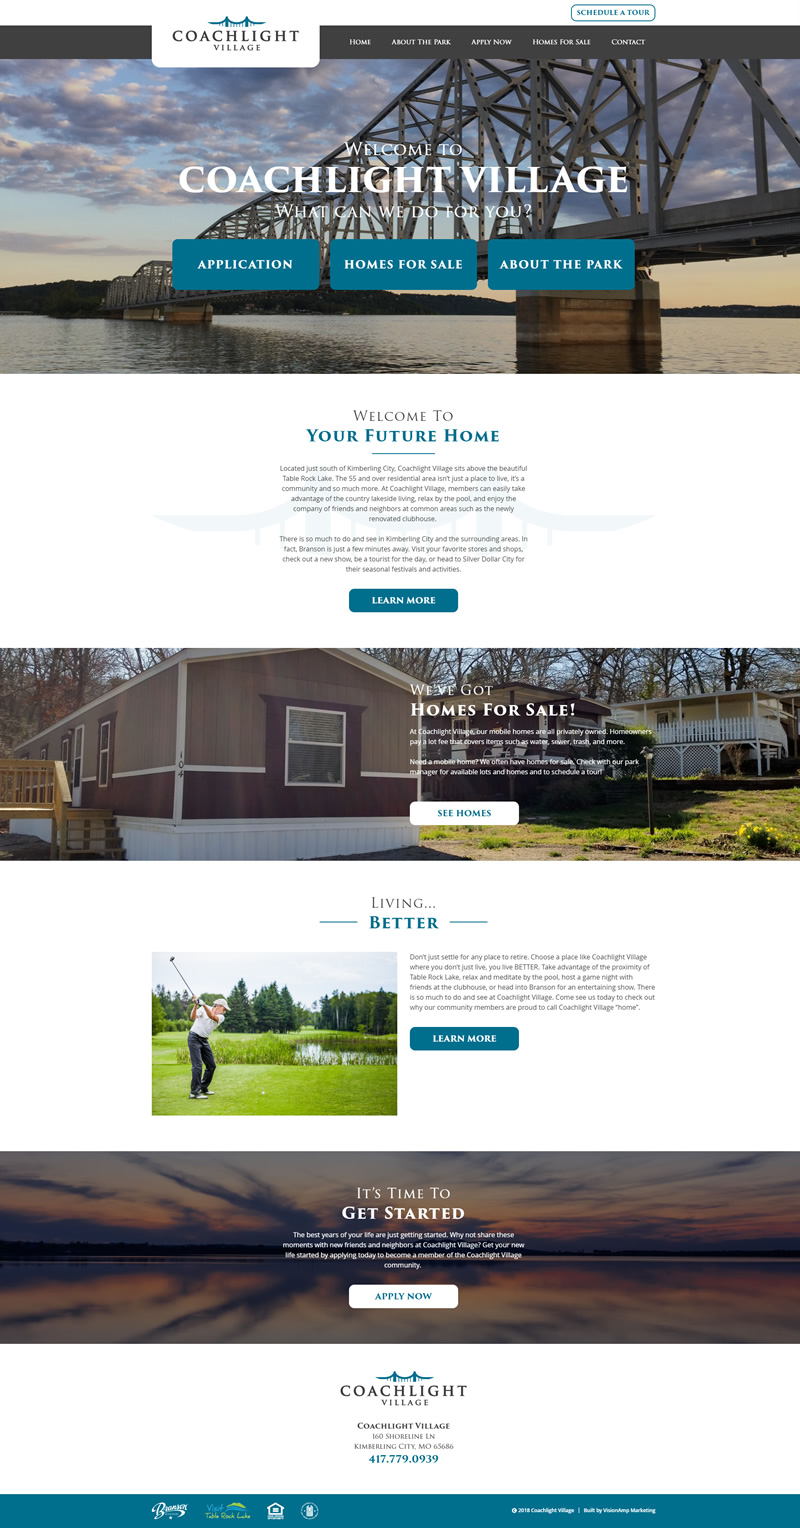 Coachlight Village Full Web Design Image